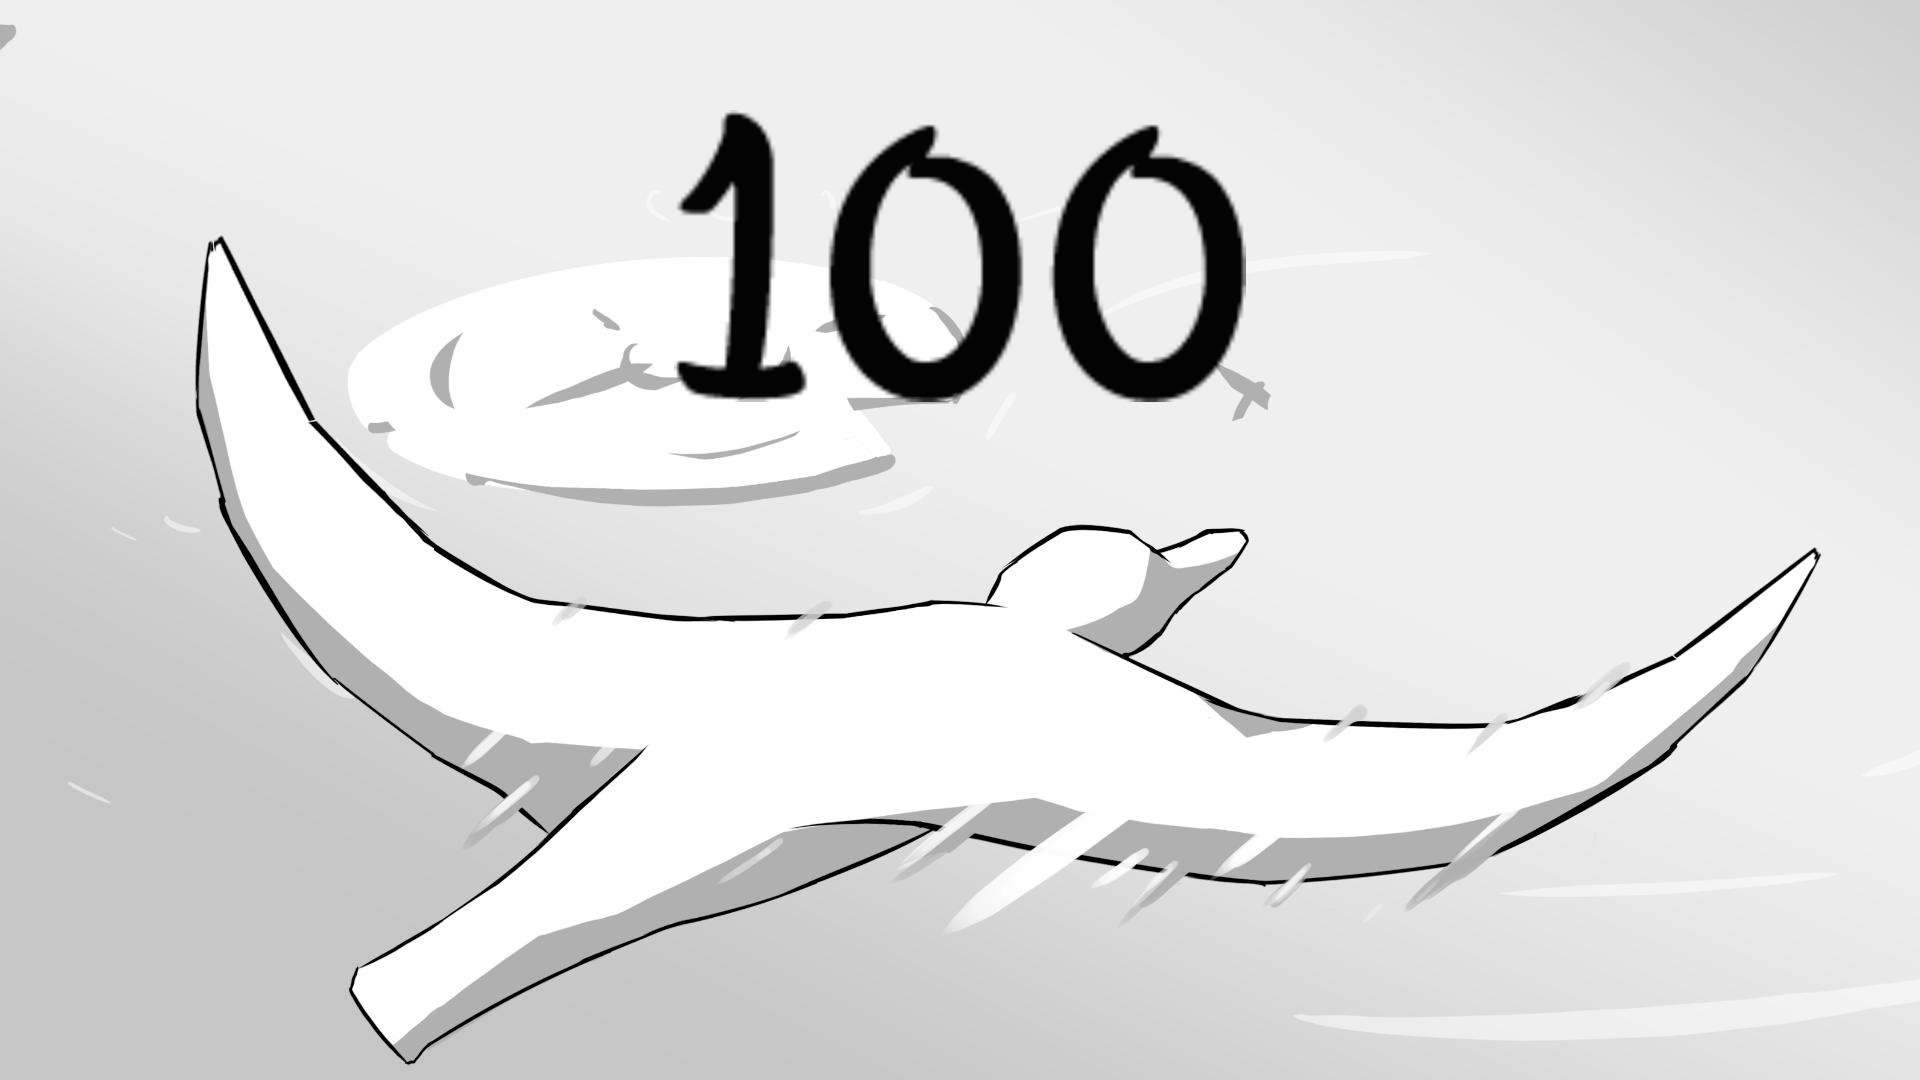 Icon for Practicing Flying